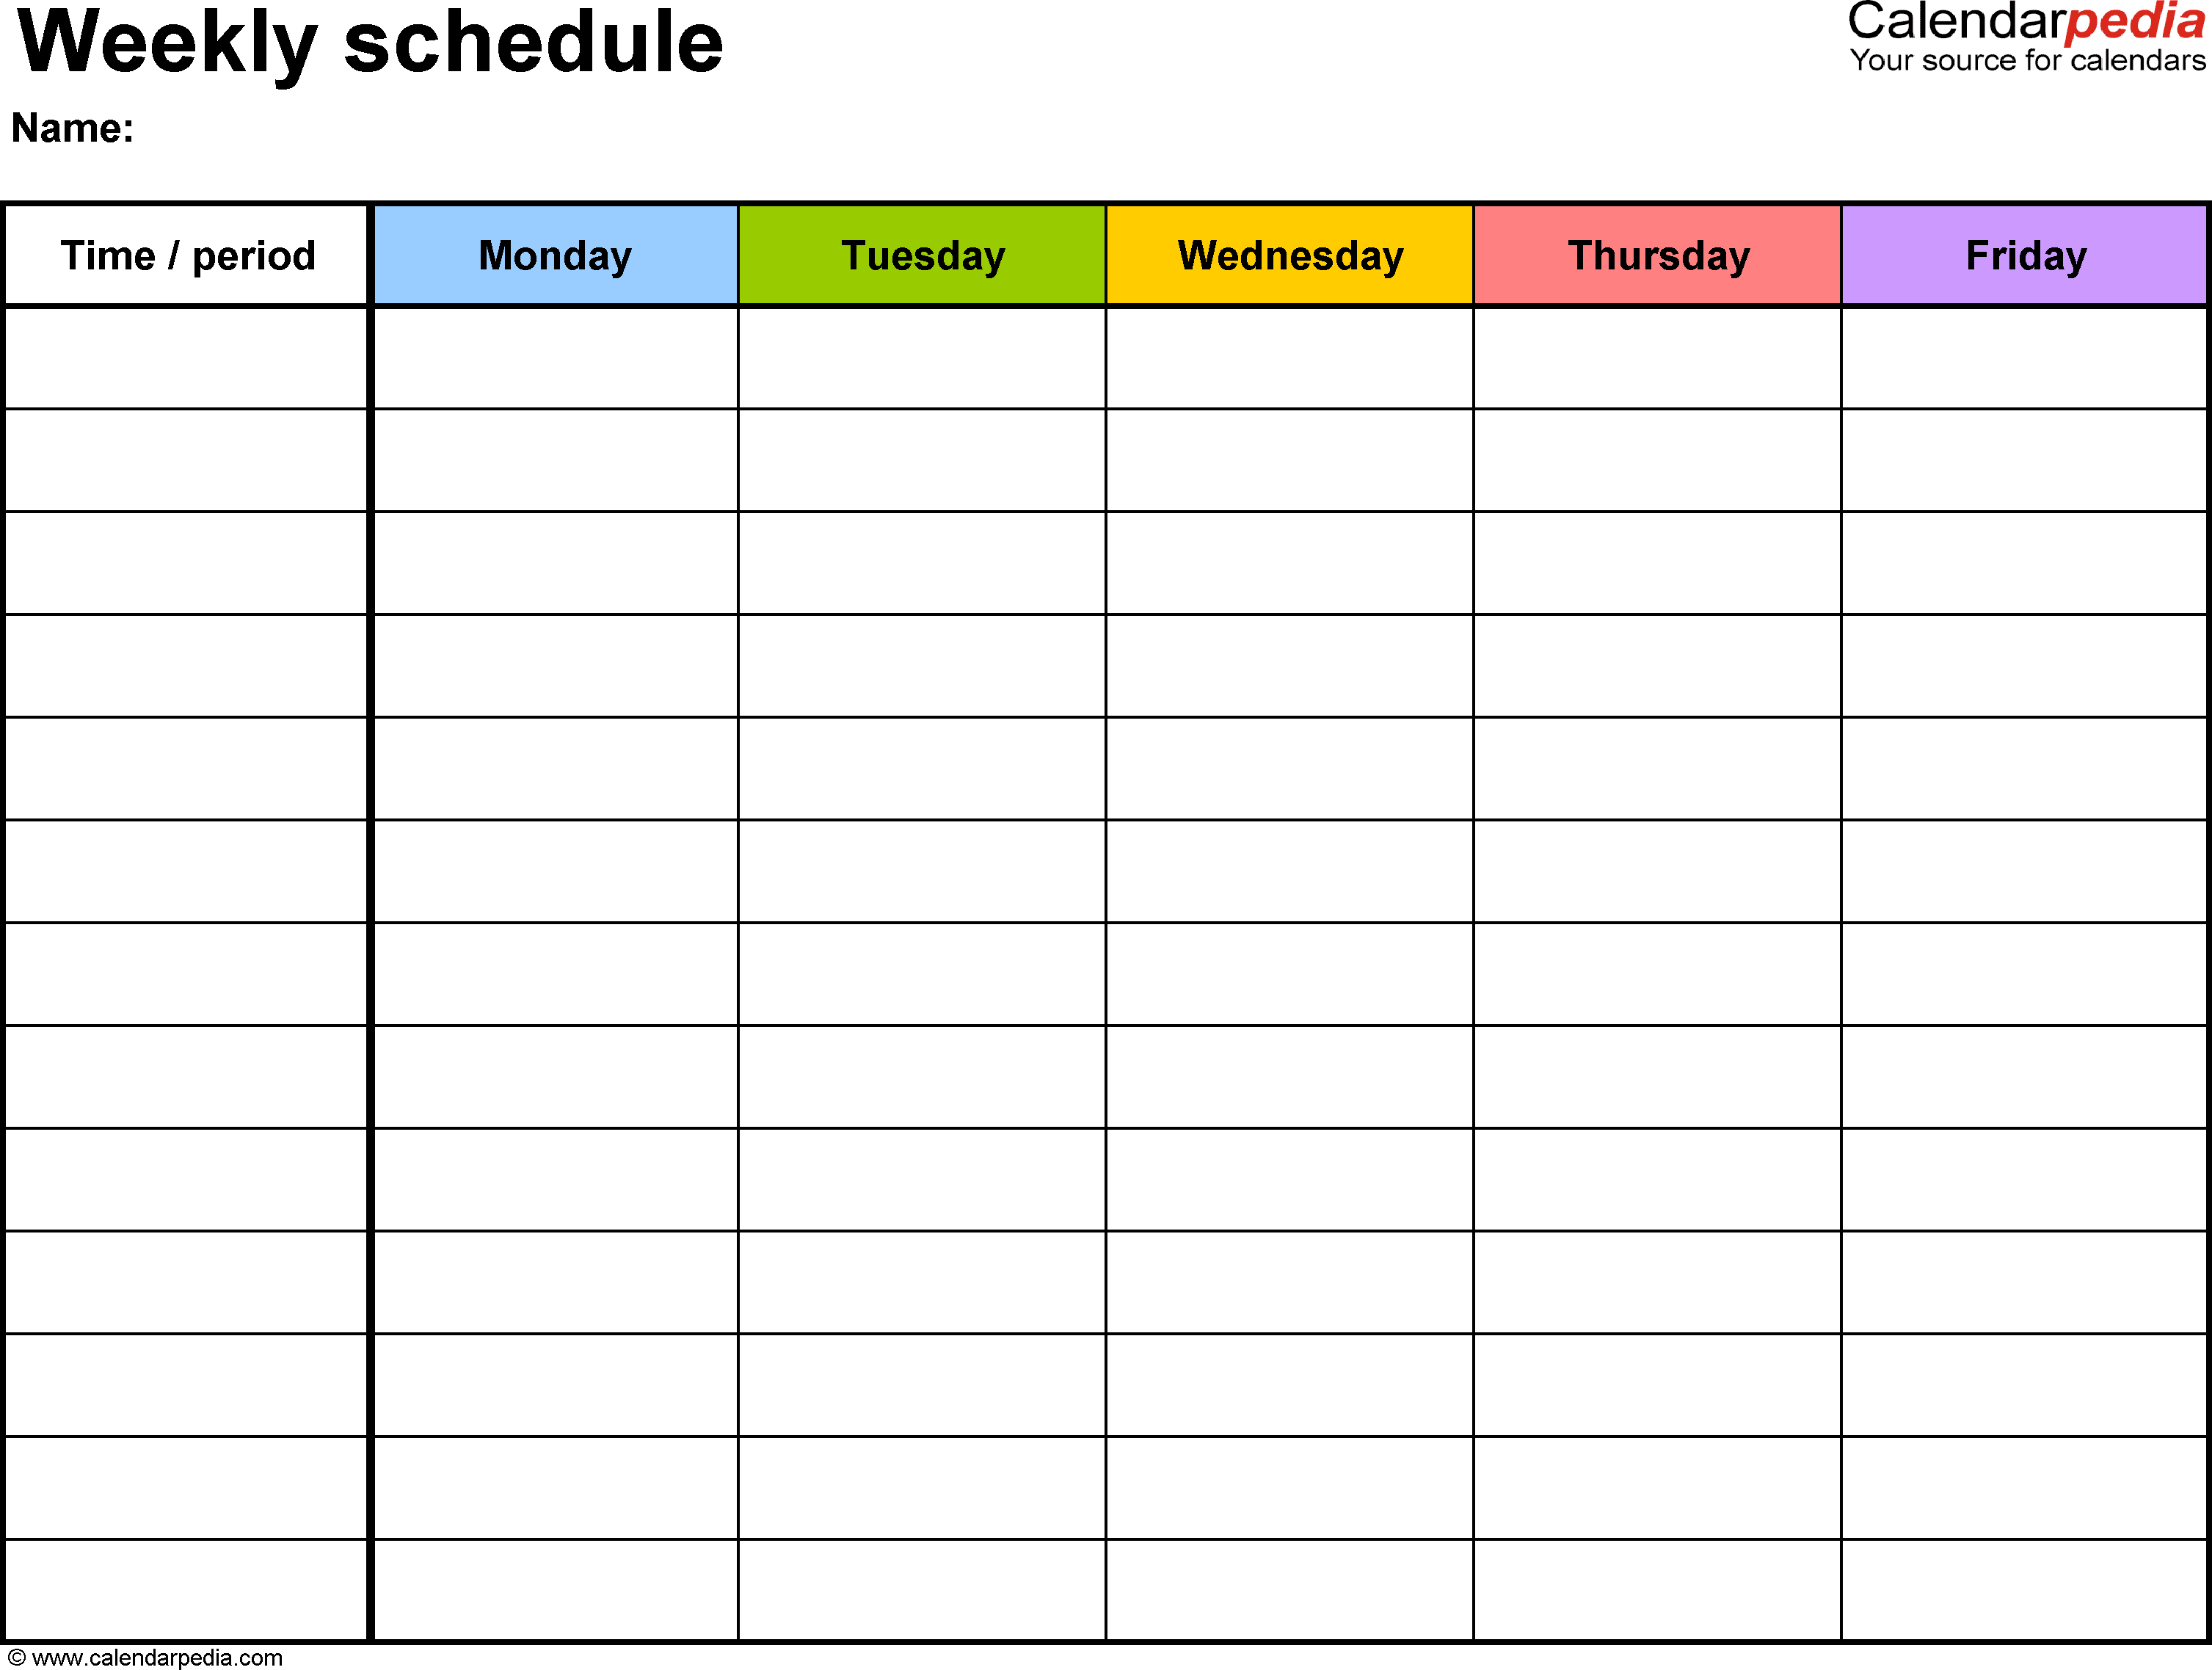 Weekly Schedule Template For Word Version 1: Landscape, 1 pertaining to Monday Through Sunday Calendar Template